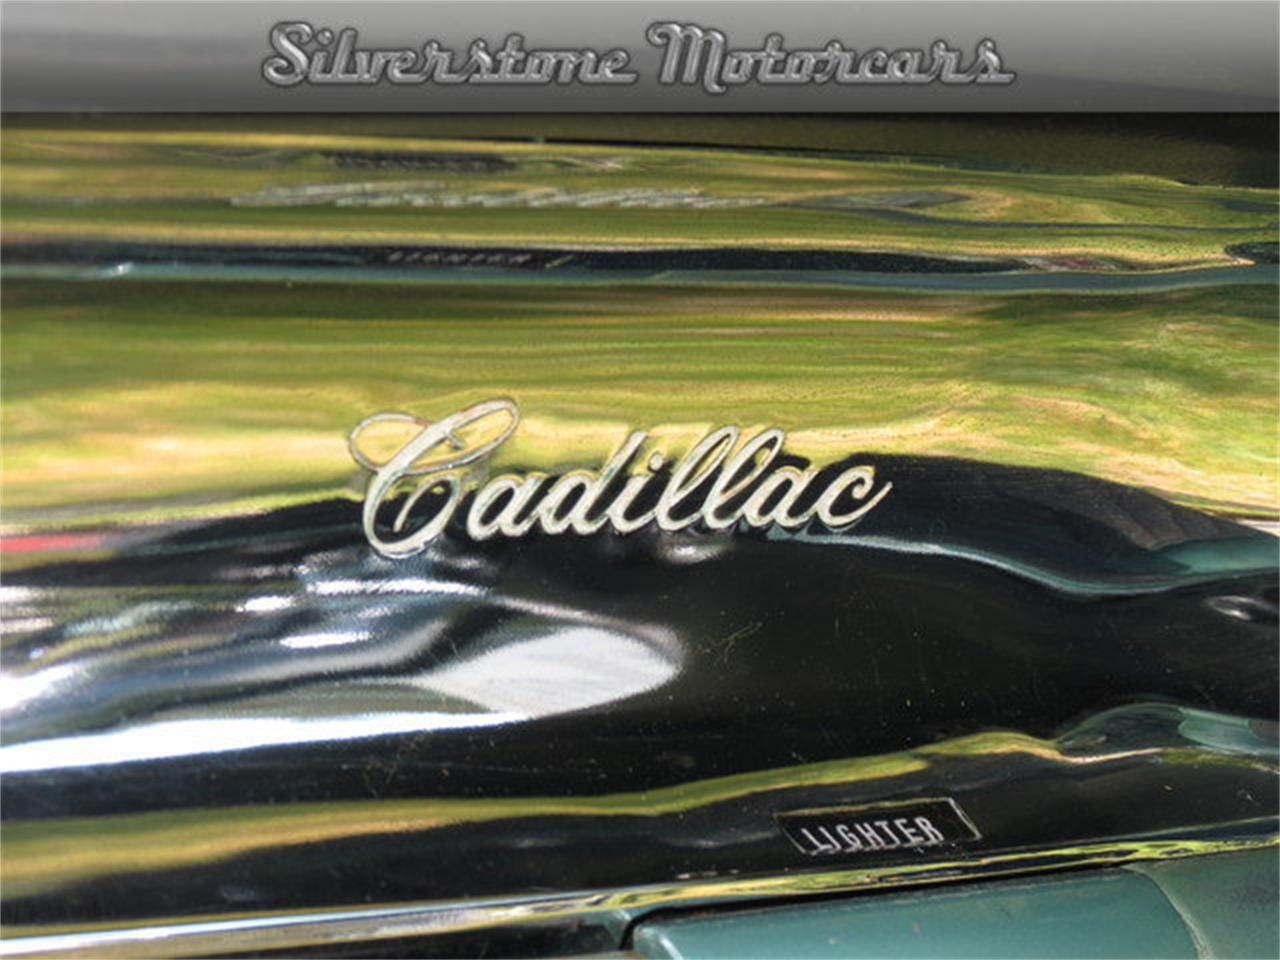 Large Picture of Classic 1957 Cadillac Fleetwood located in North Andover Massachusetts - $19,950.00 - F8GG